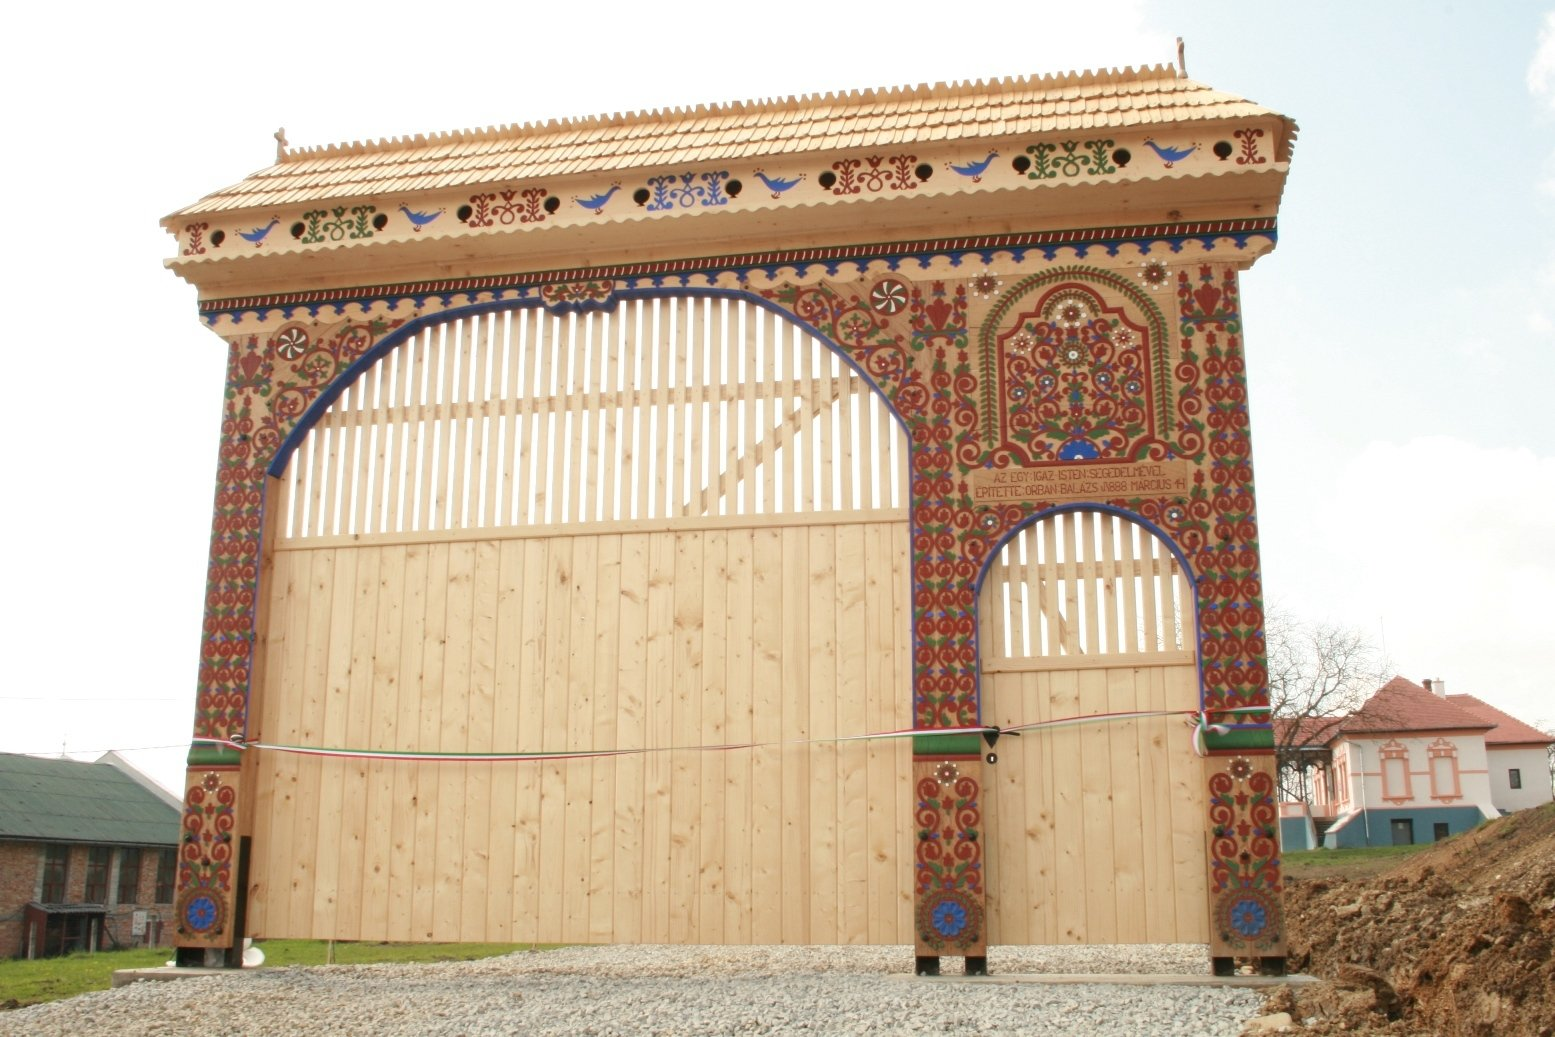 Szekler gate: the largest and most complex gate of its kind in North America